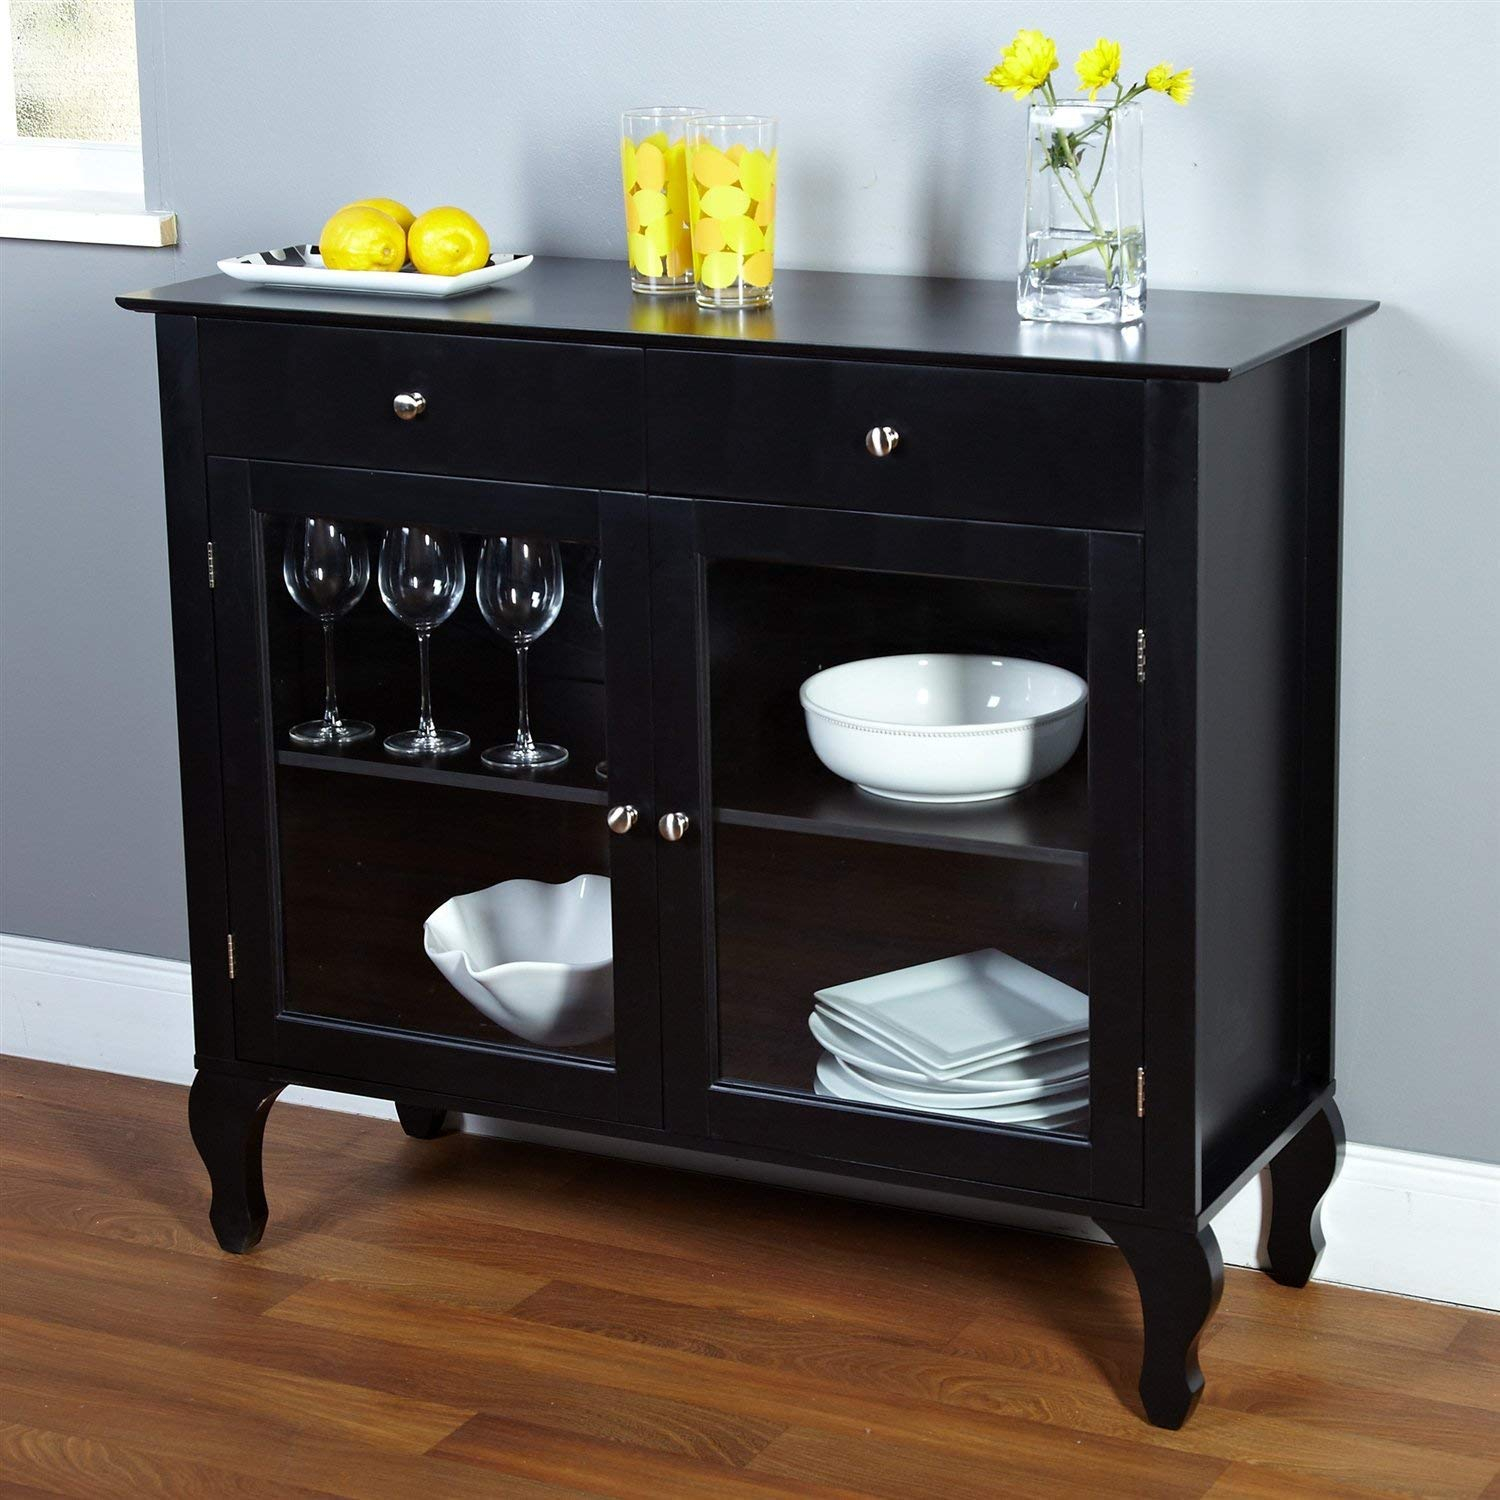 Cheap Black Dining Buffet, Find Black Dining Buffet Deals On intended for Industrial Cement-Like Multi-Storage Dining Buffets (Image 6 of 30)